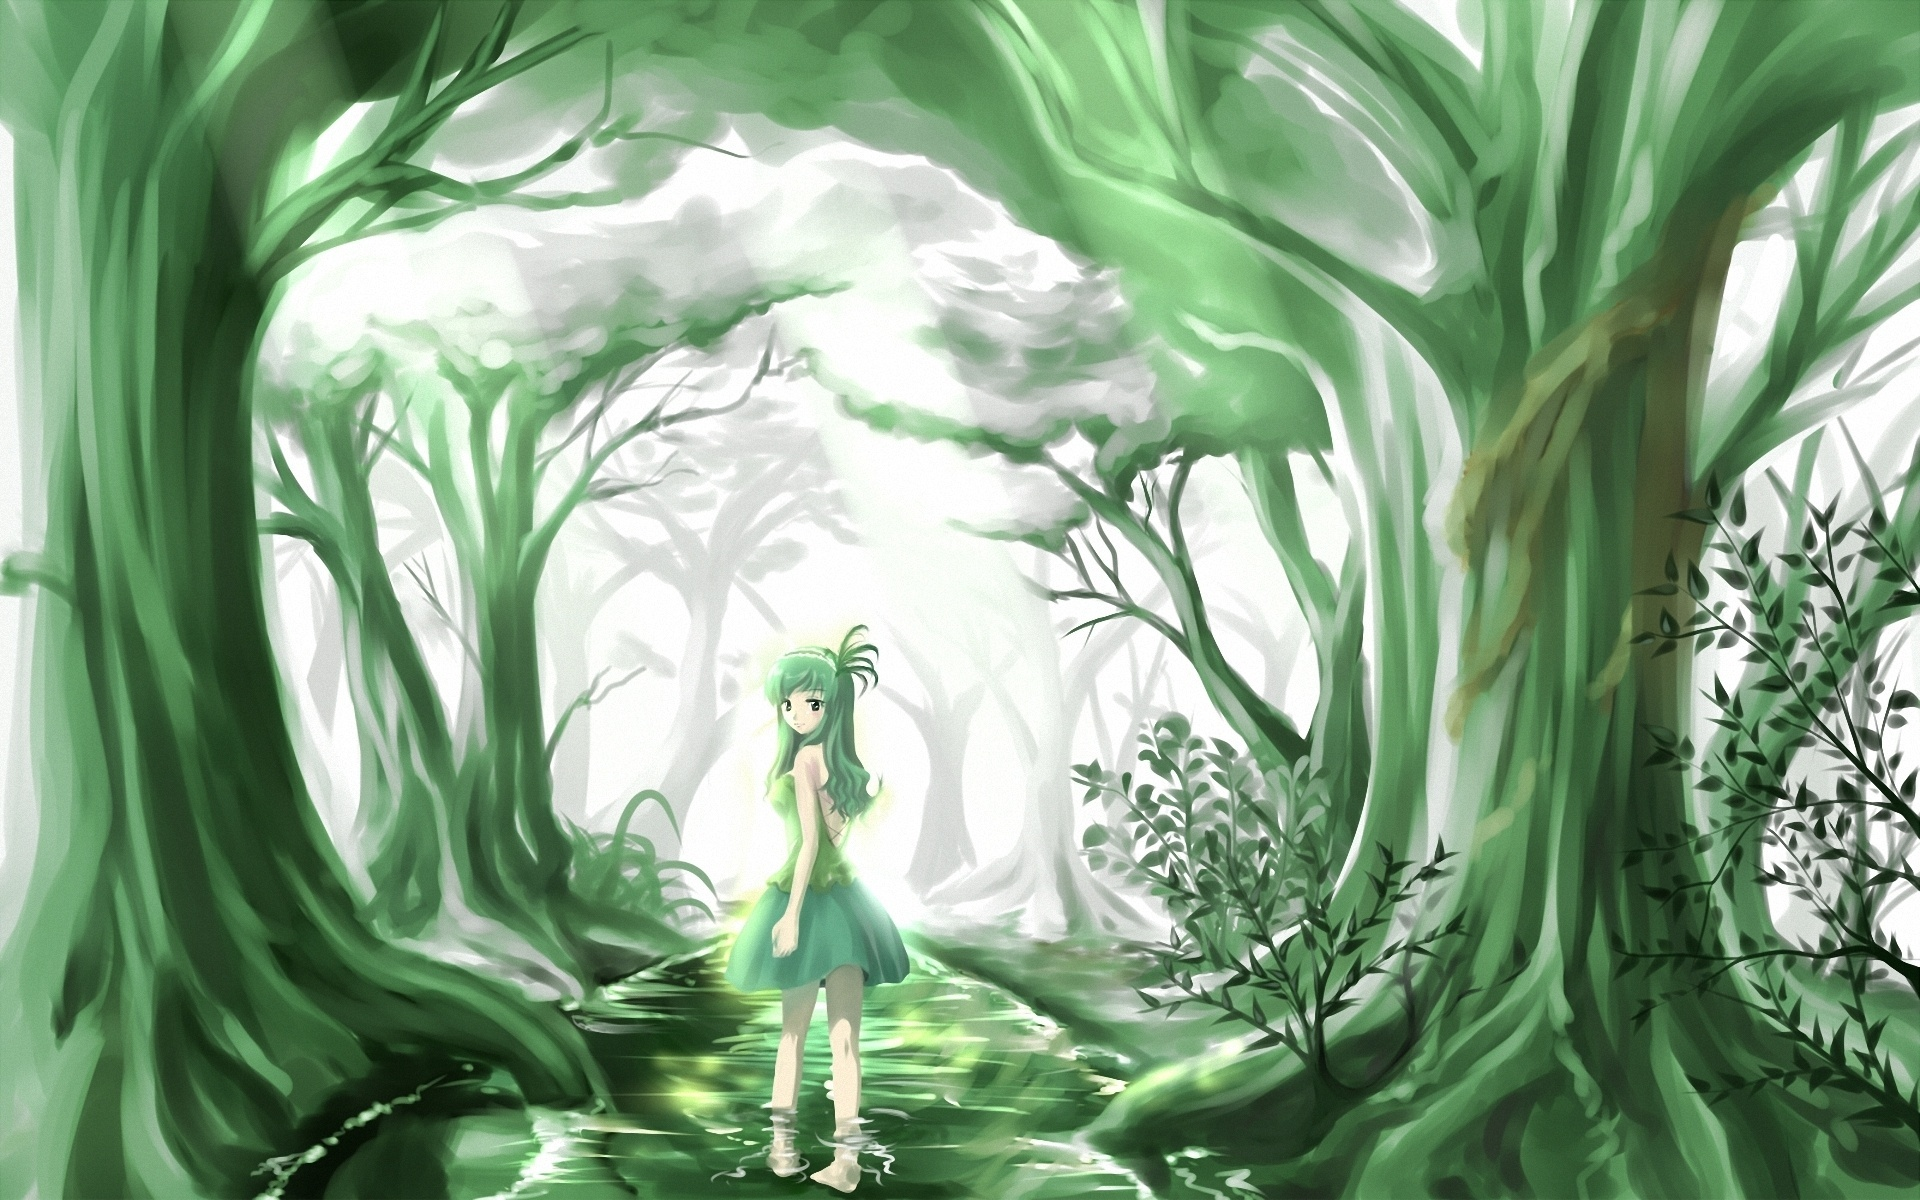 Girls Profile Wallpaper Anime Original Trees Forest Artistic Cute Women Girls